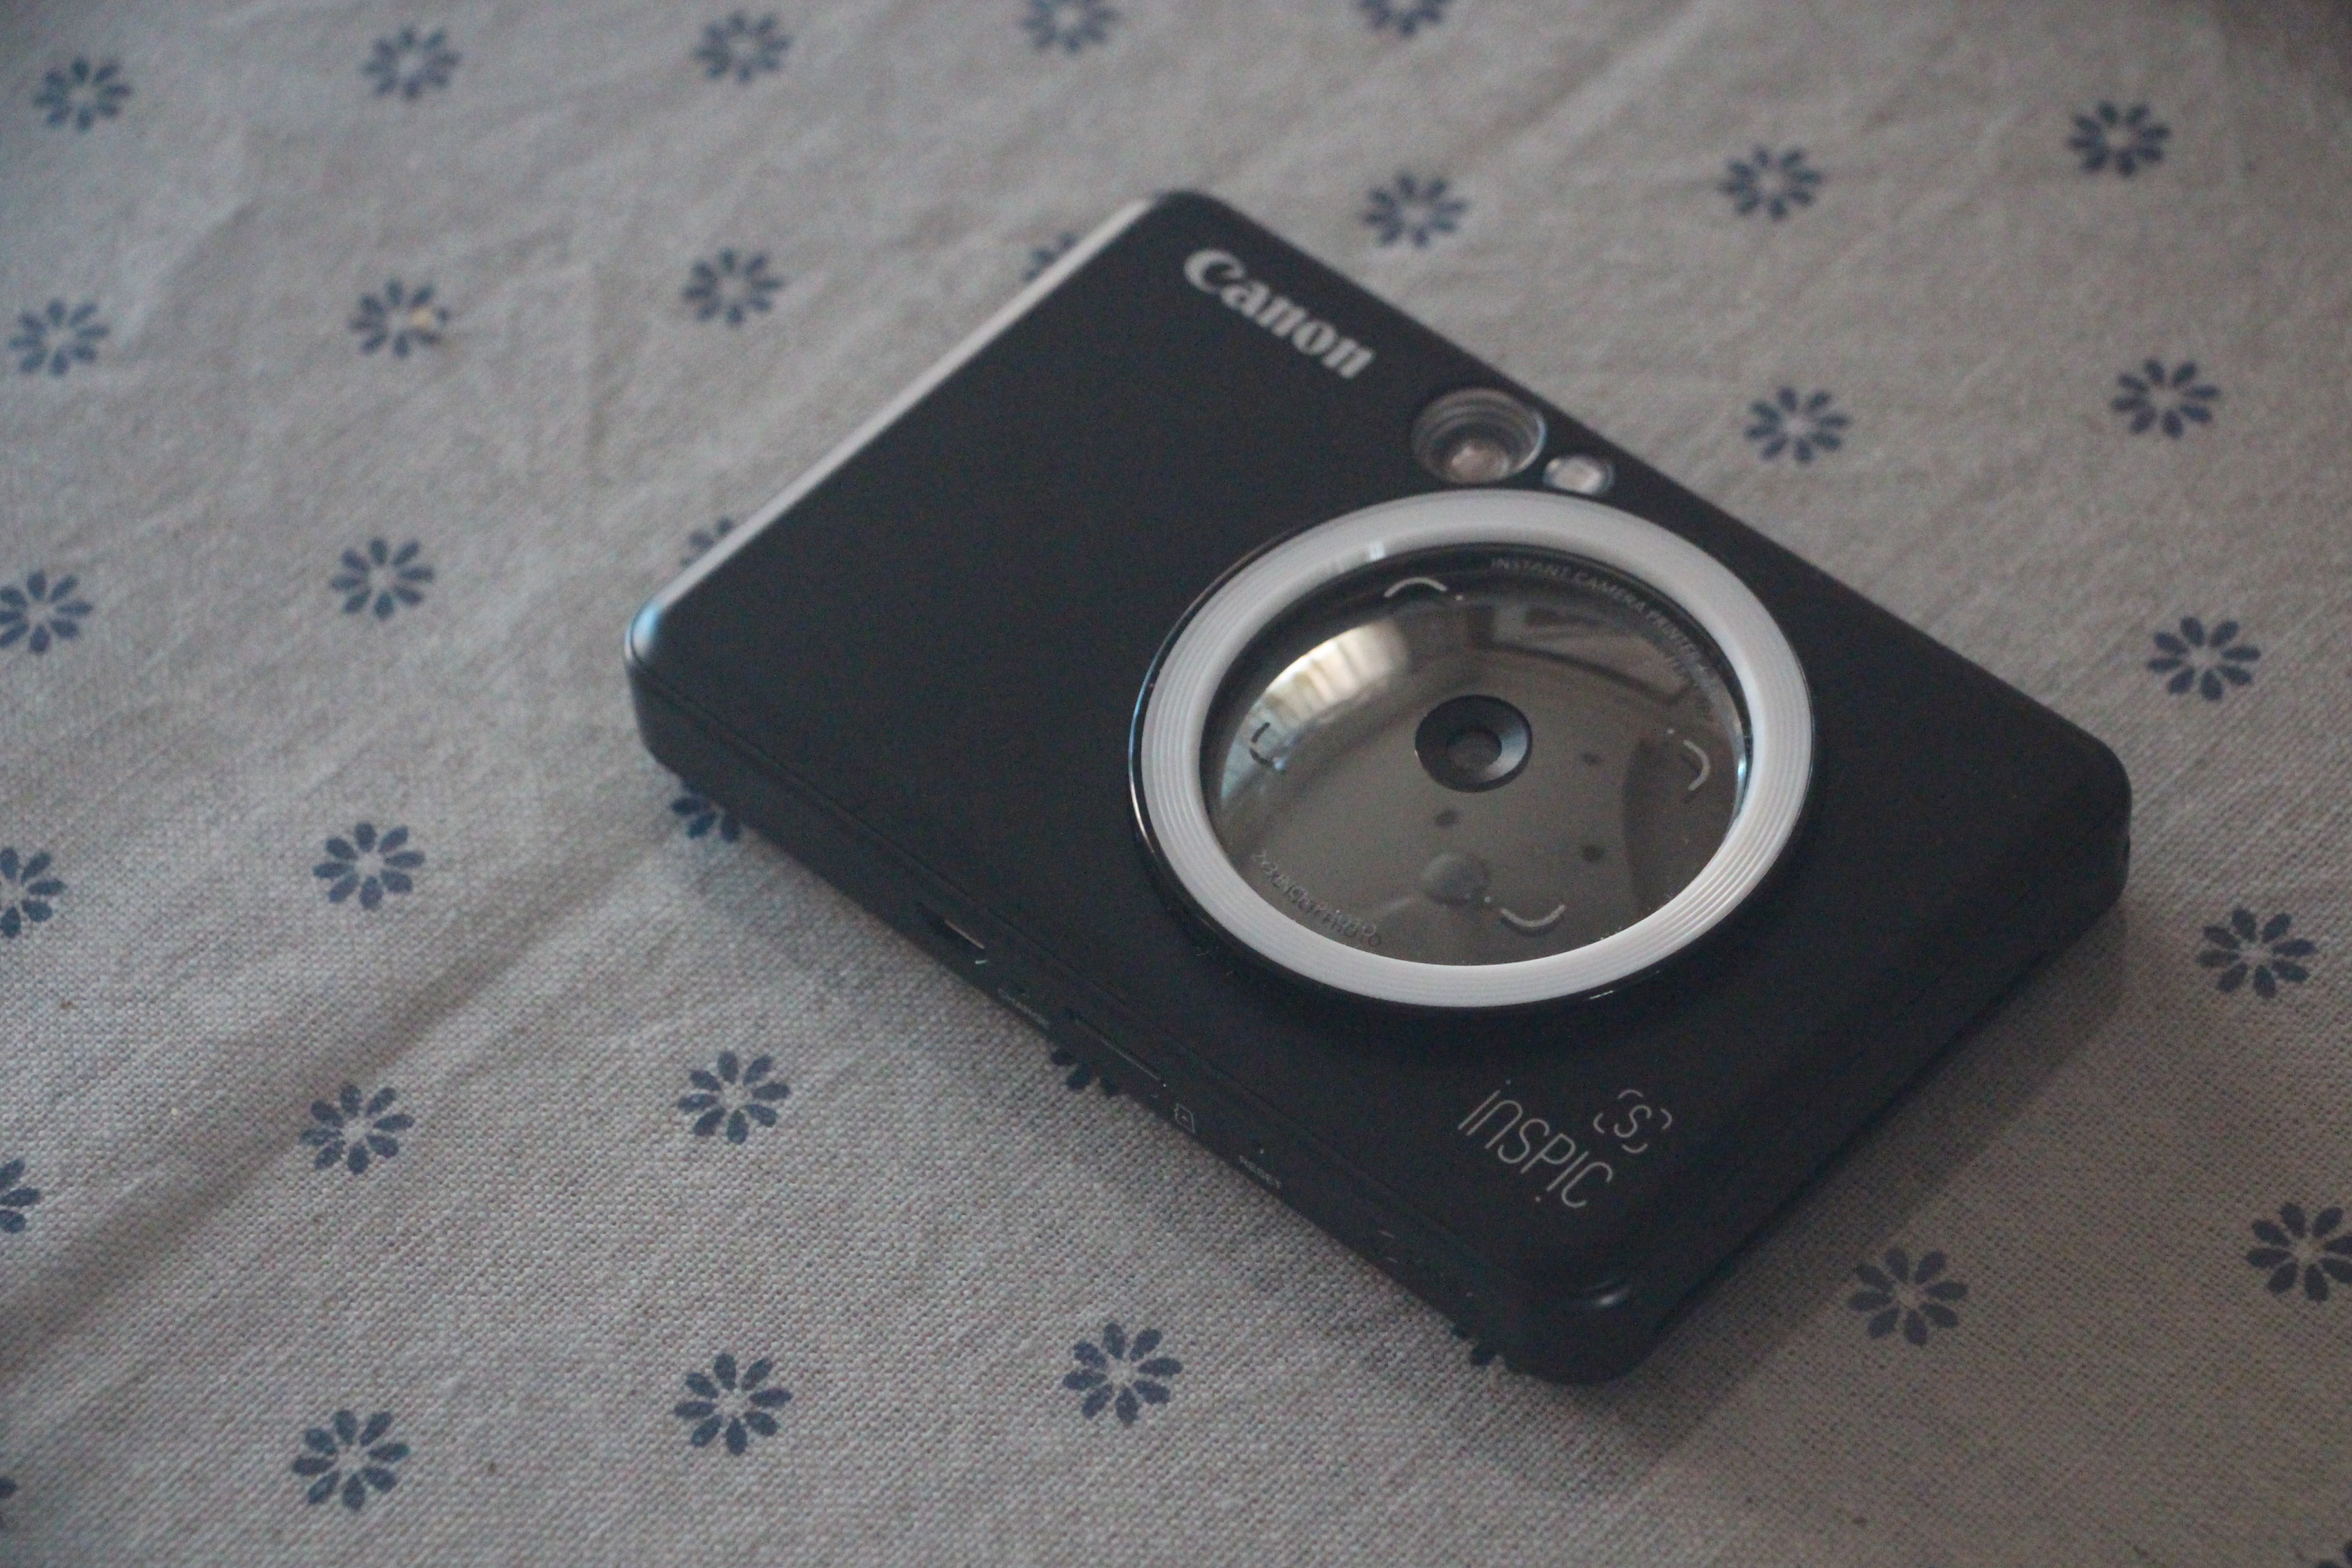 Reviewing the new Canon iNSPiC [S] series